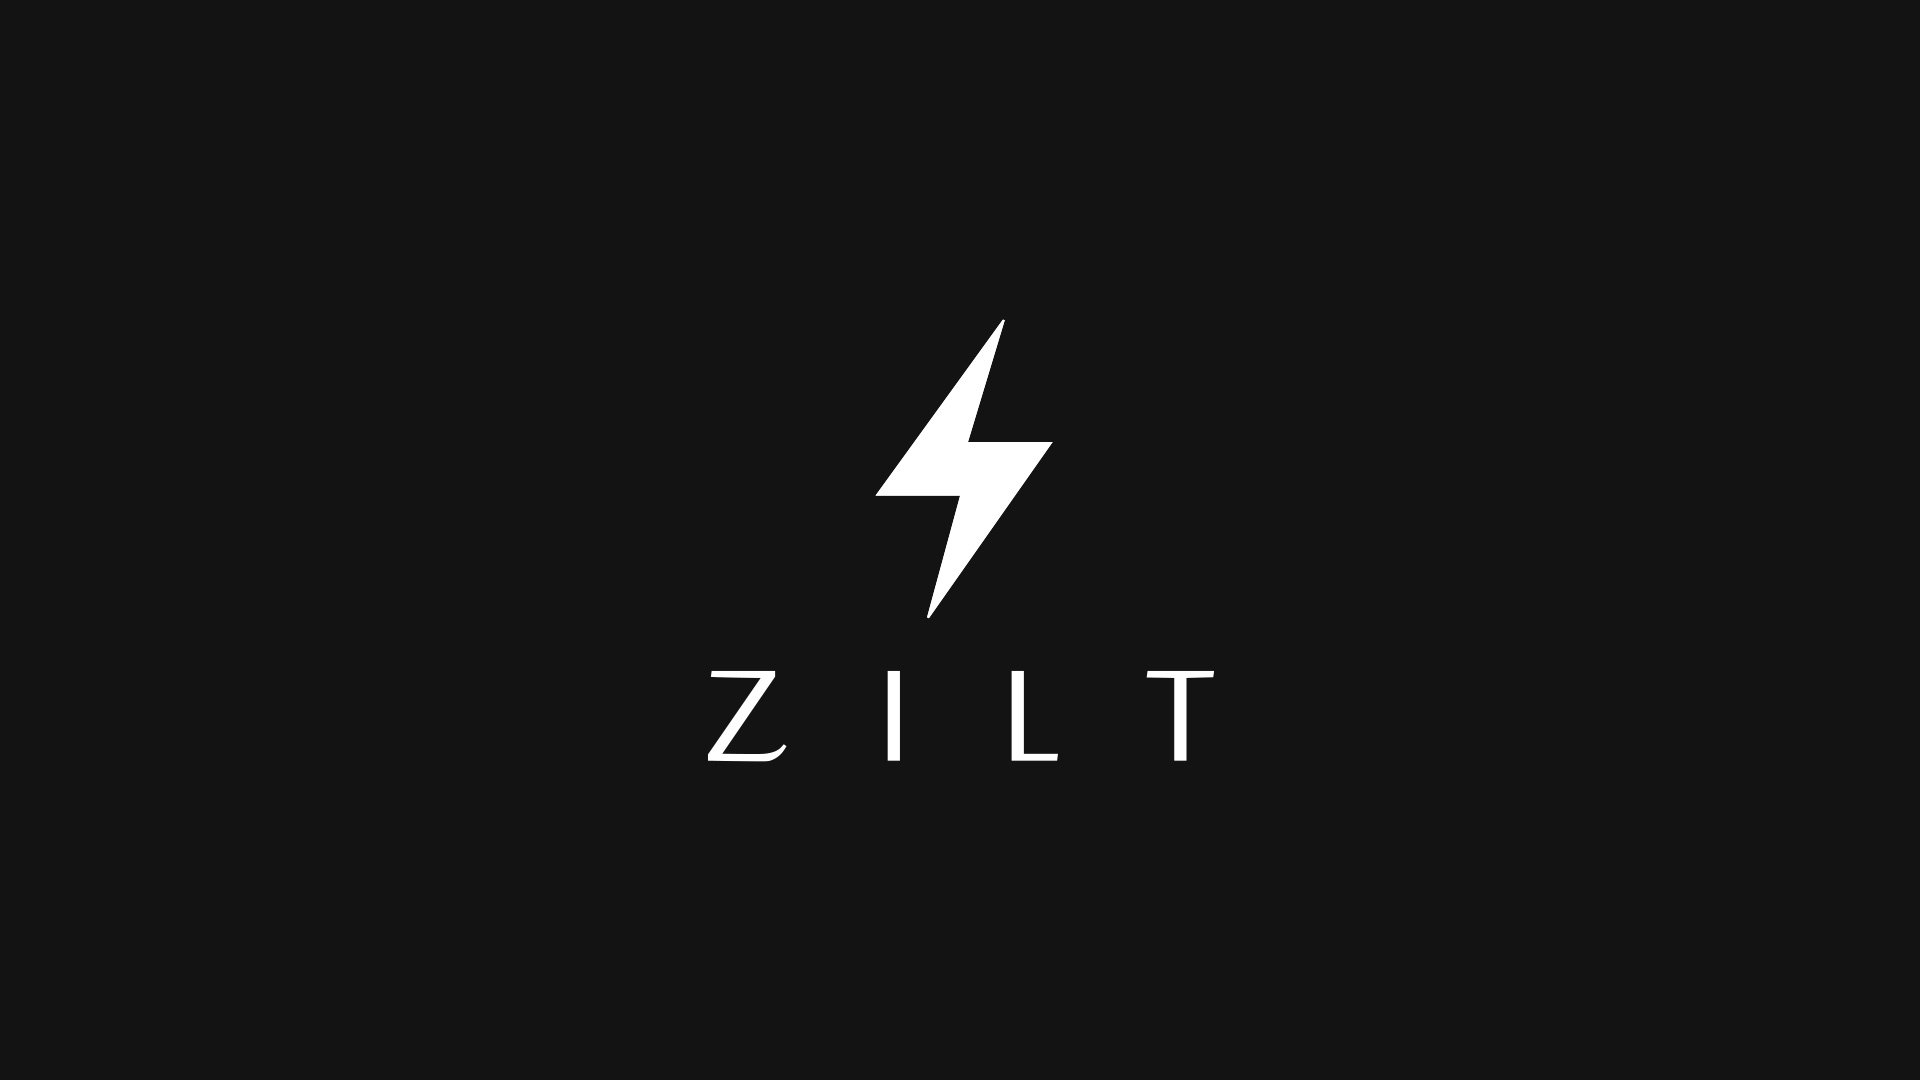 innovative-digital-amsterdam-webdesign-zilt_logos_concepts_04